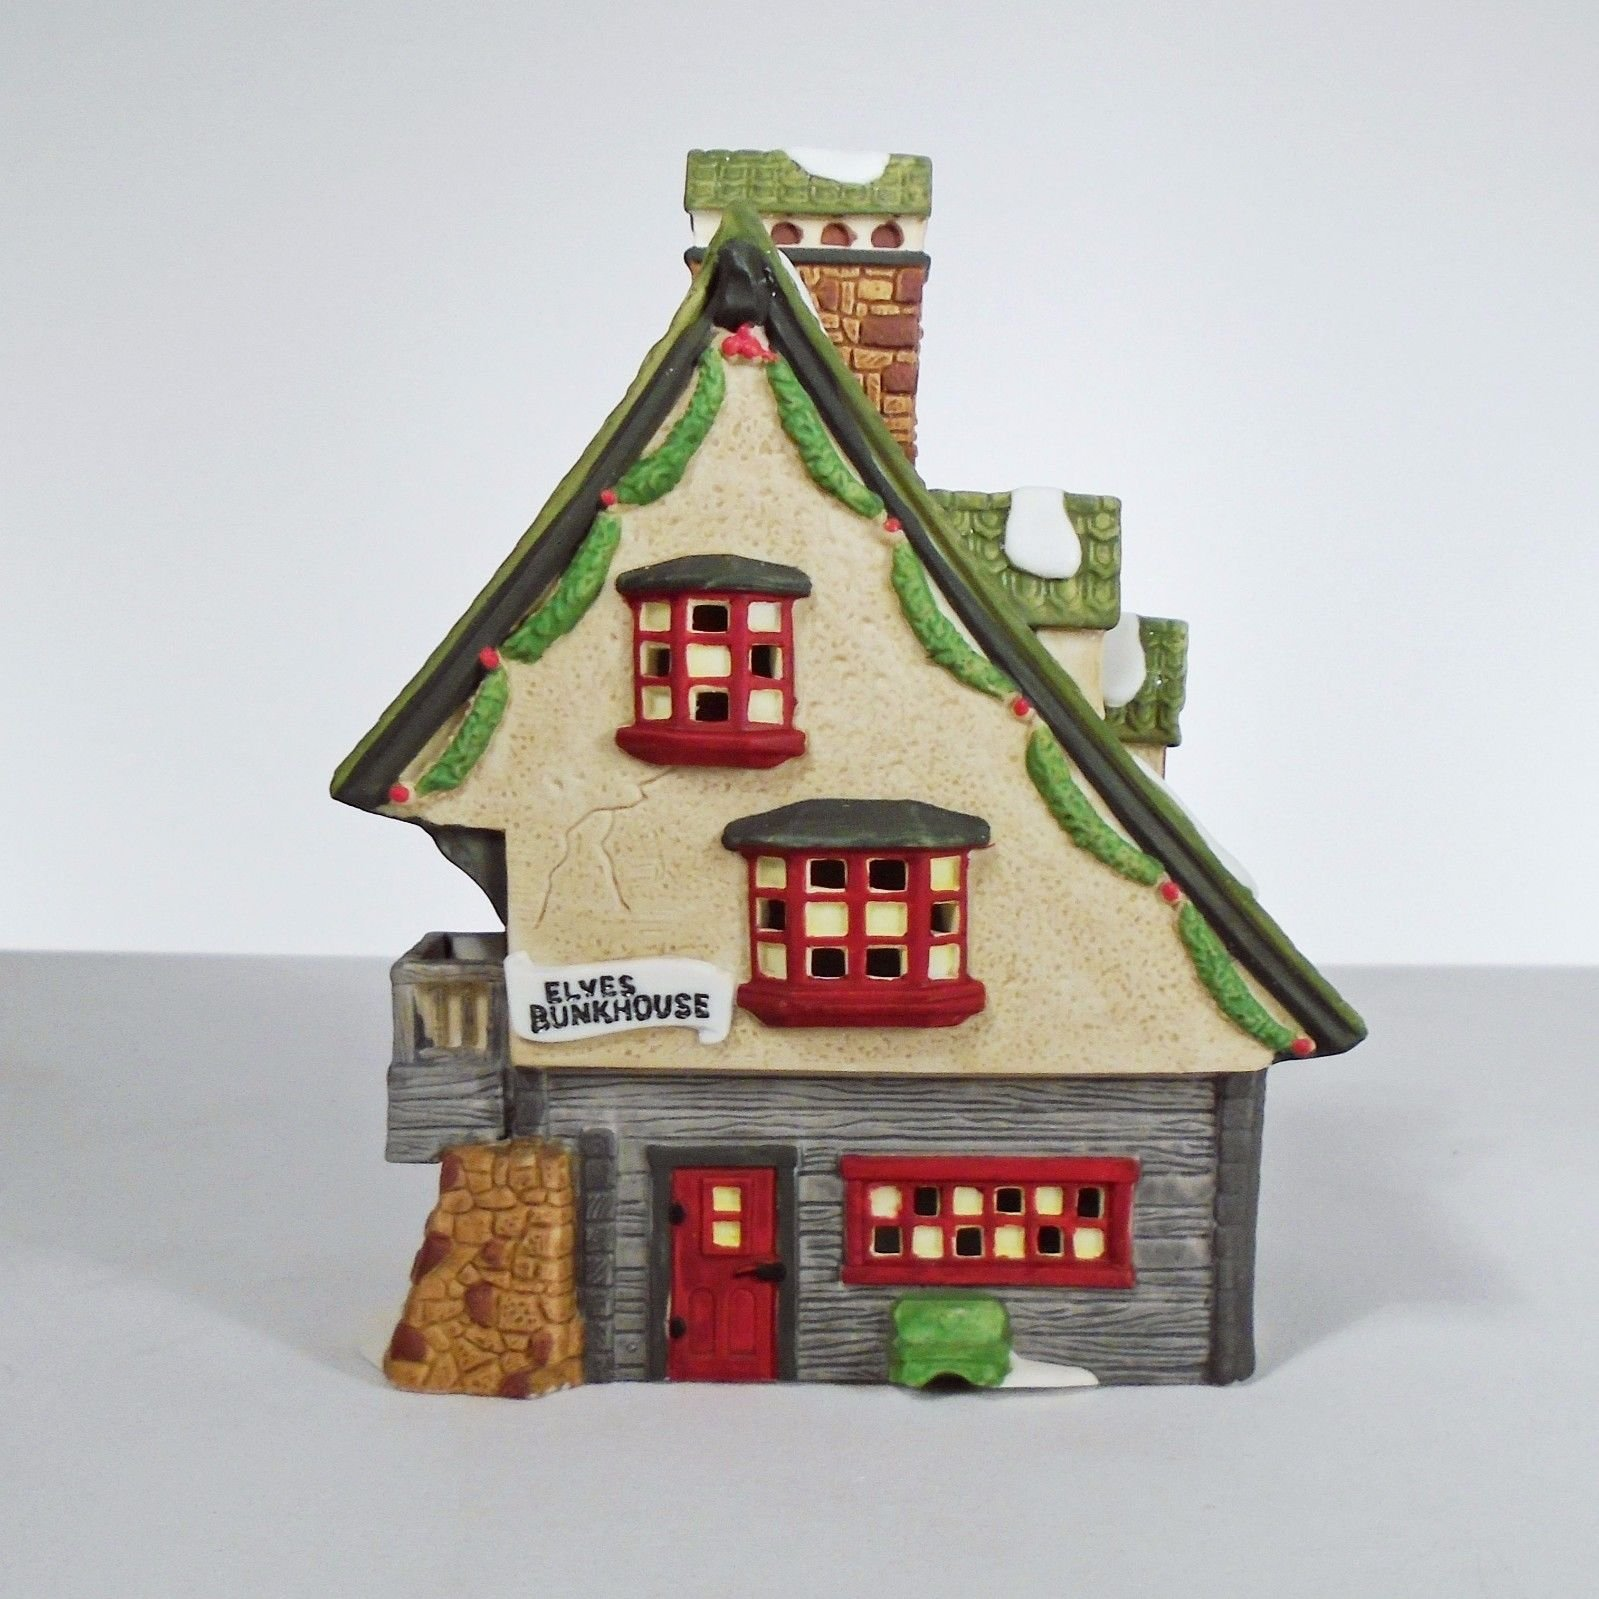 Dept 56 North Pole Collection ''North Pole Elf Bunkhouse''-1990 #5601-4 Retired